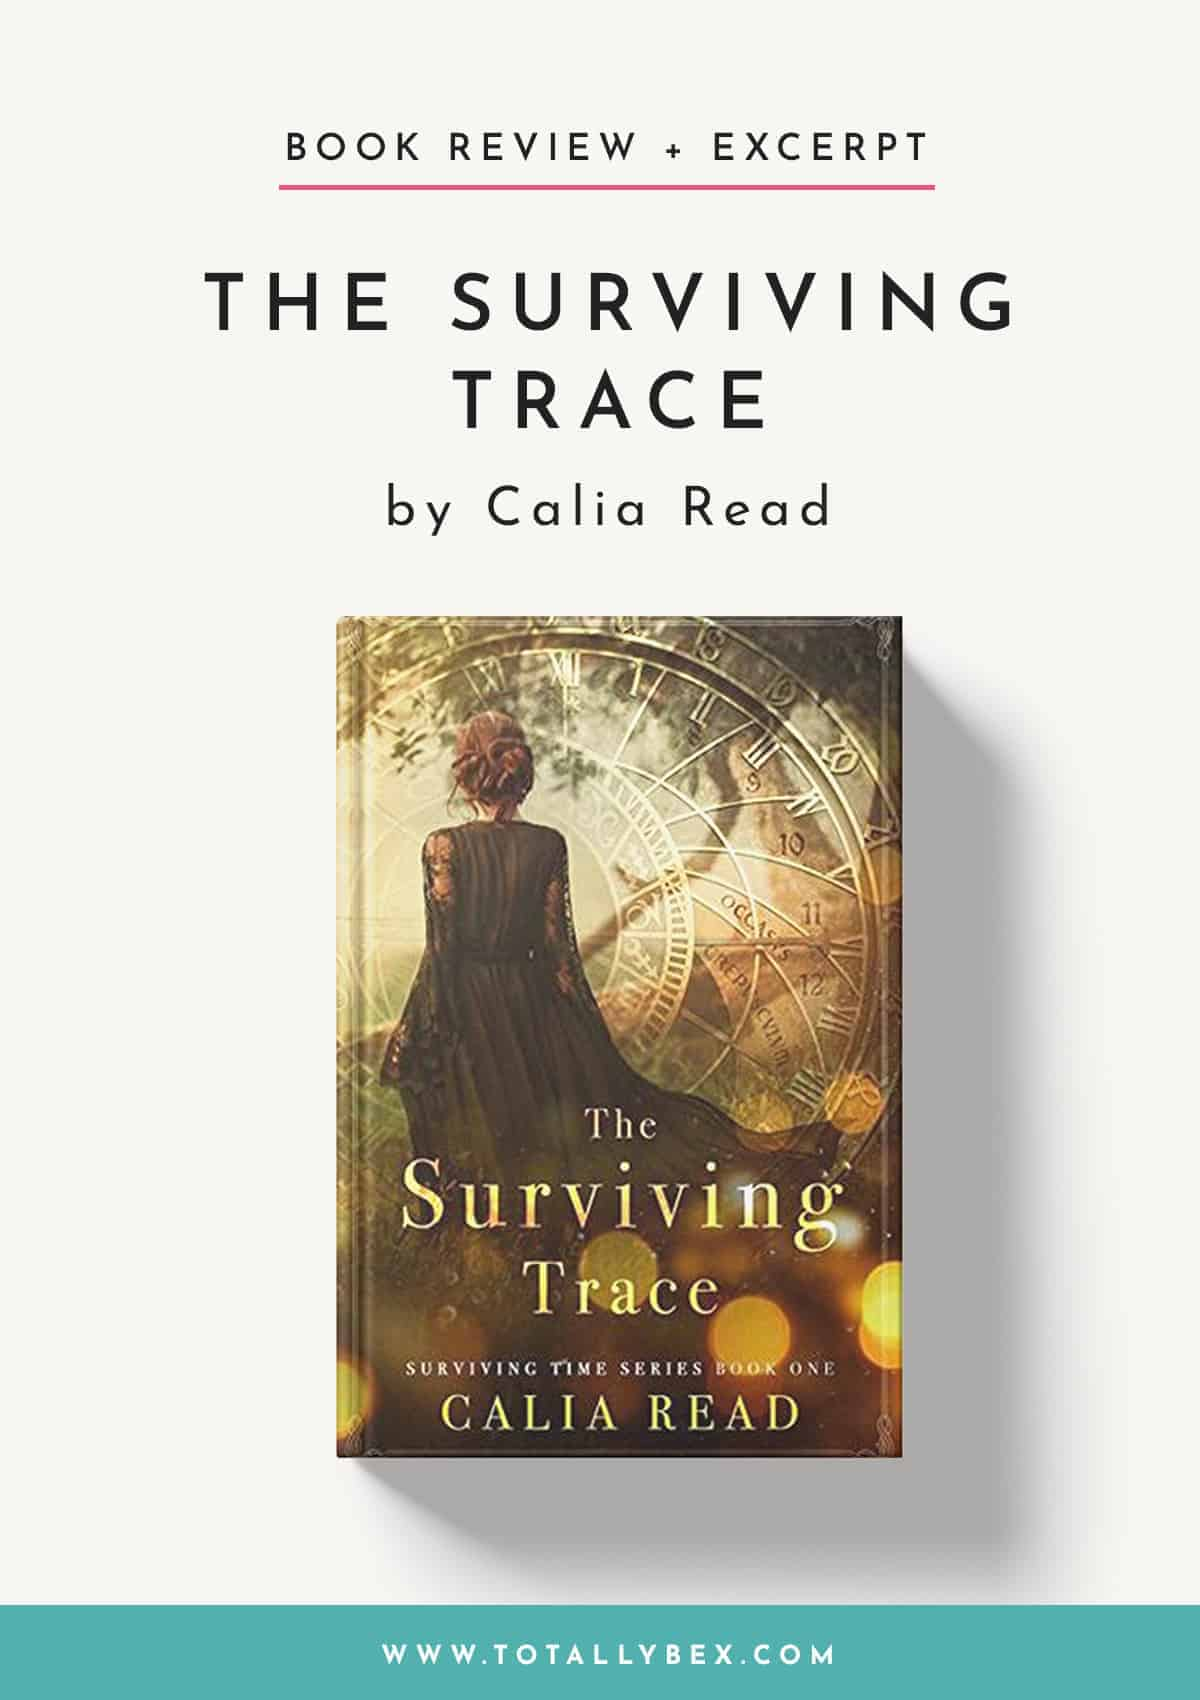 The Surviving Trace by Calia Read-Book Review+Excerpt